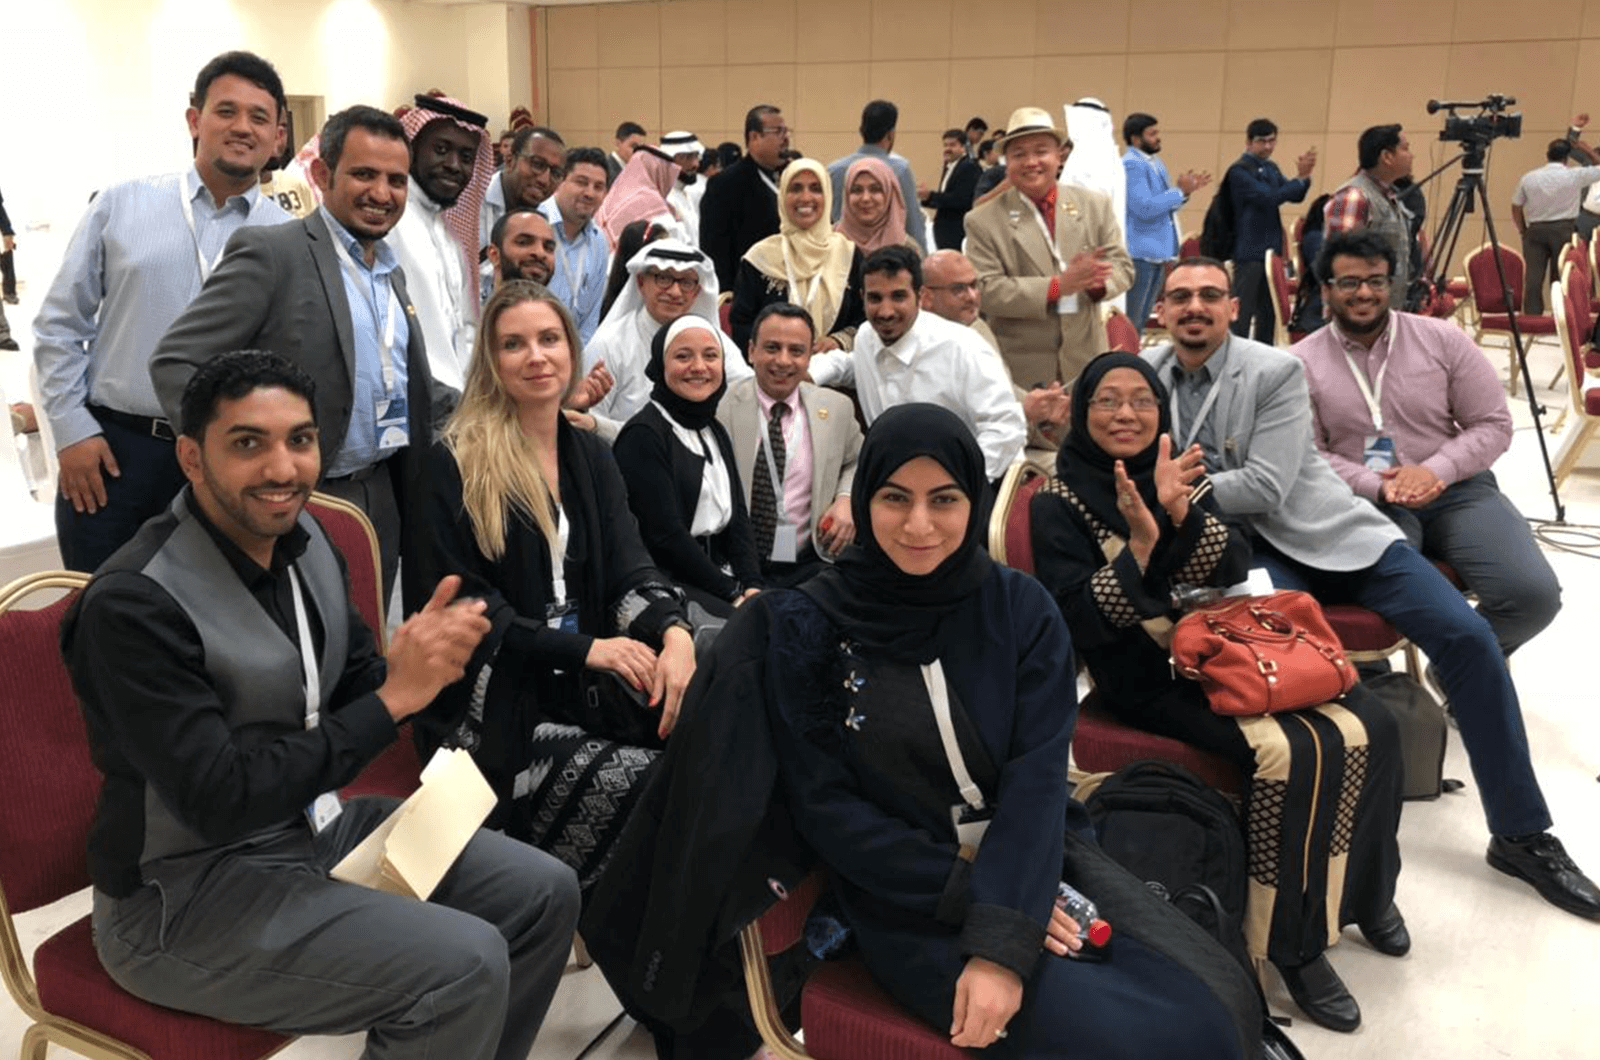 Bilquis Ahmed (pictured in back wearing yellow hijab), poses with her fellow Toastmasters in Saudi Arabia.